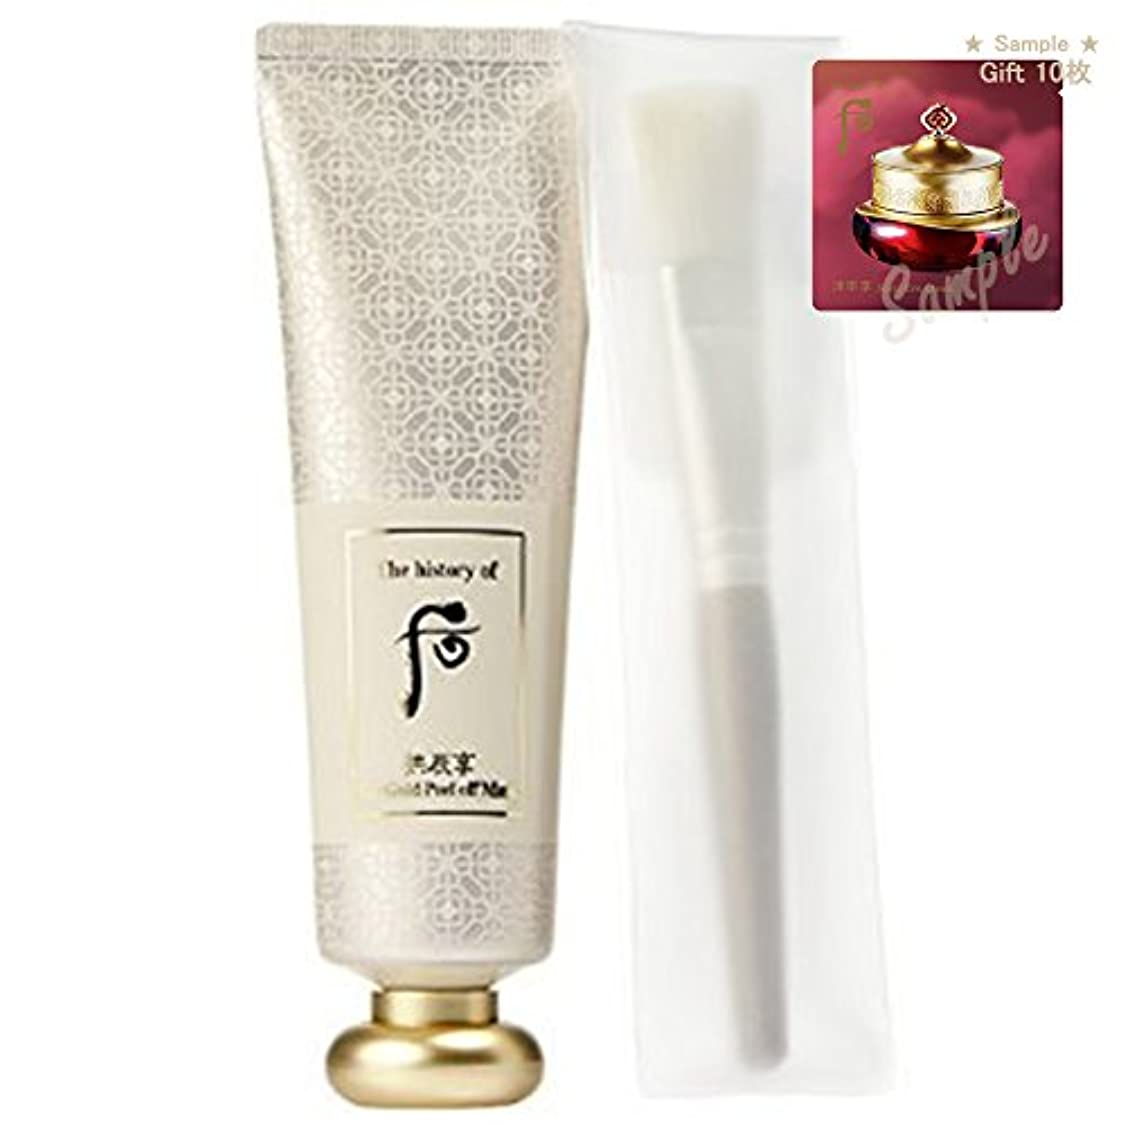 に向かって散らすサルベージ【フー/ The history of whoo]The History of Whoo Gongjinhyang Ul: Gold Peel off Mask 80ml/后(フー)ゴールドマスク + [Sample Gift](海外直送品)